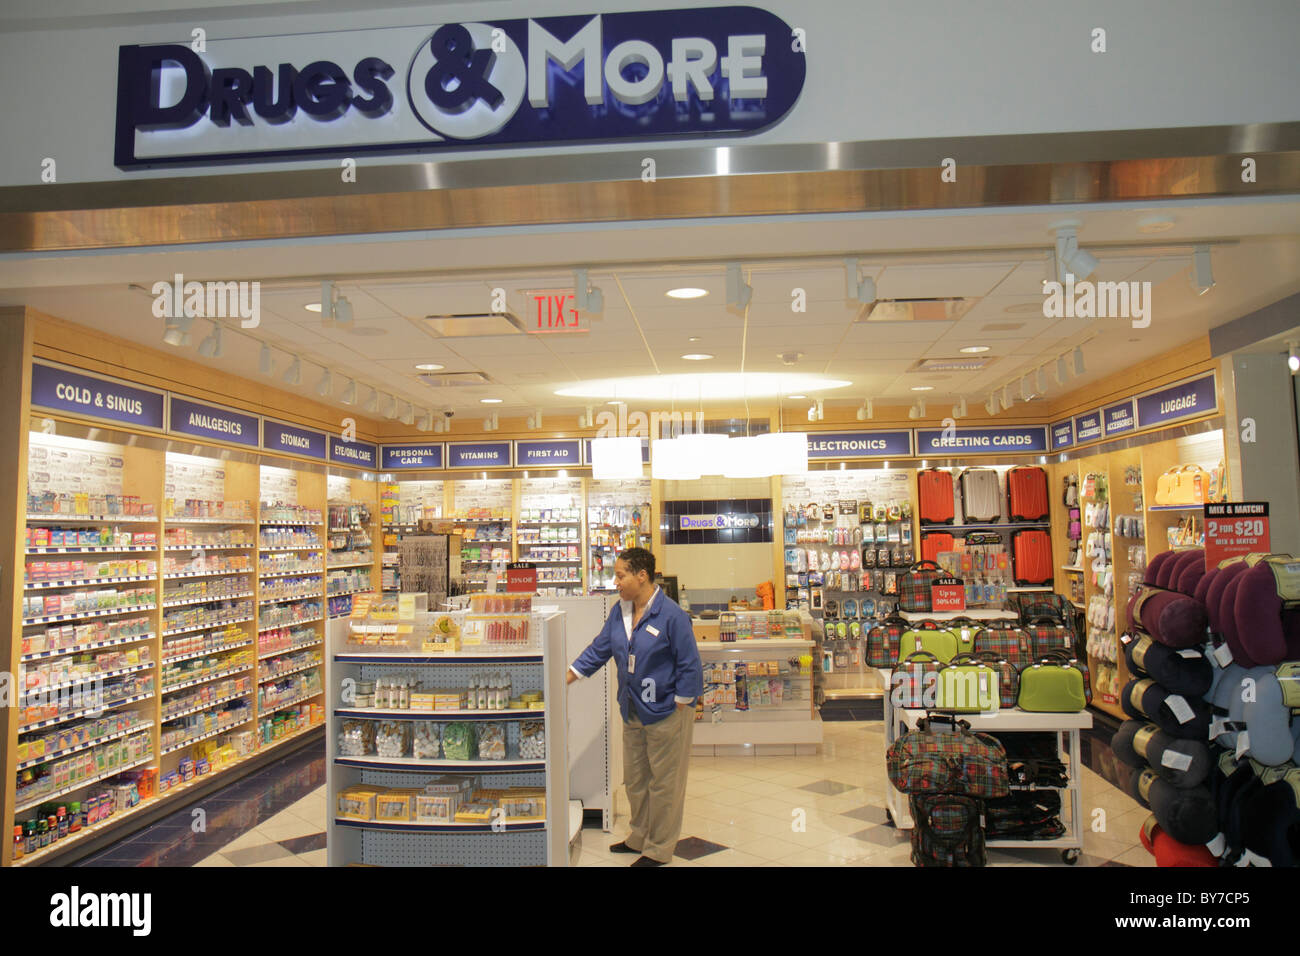 Atlanta Georgia Hartsfield-Jackson Atlanta International Airport concession retail business Drugs & and More - Stock Image